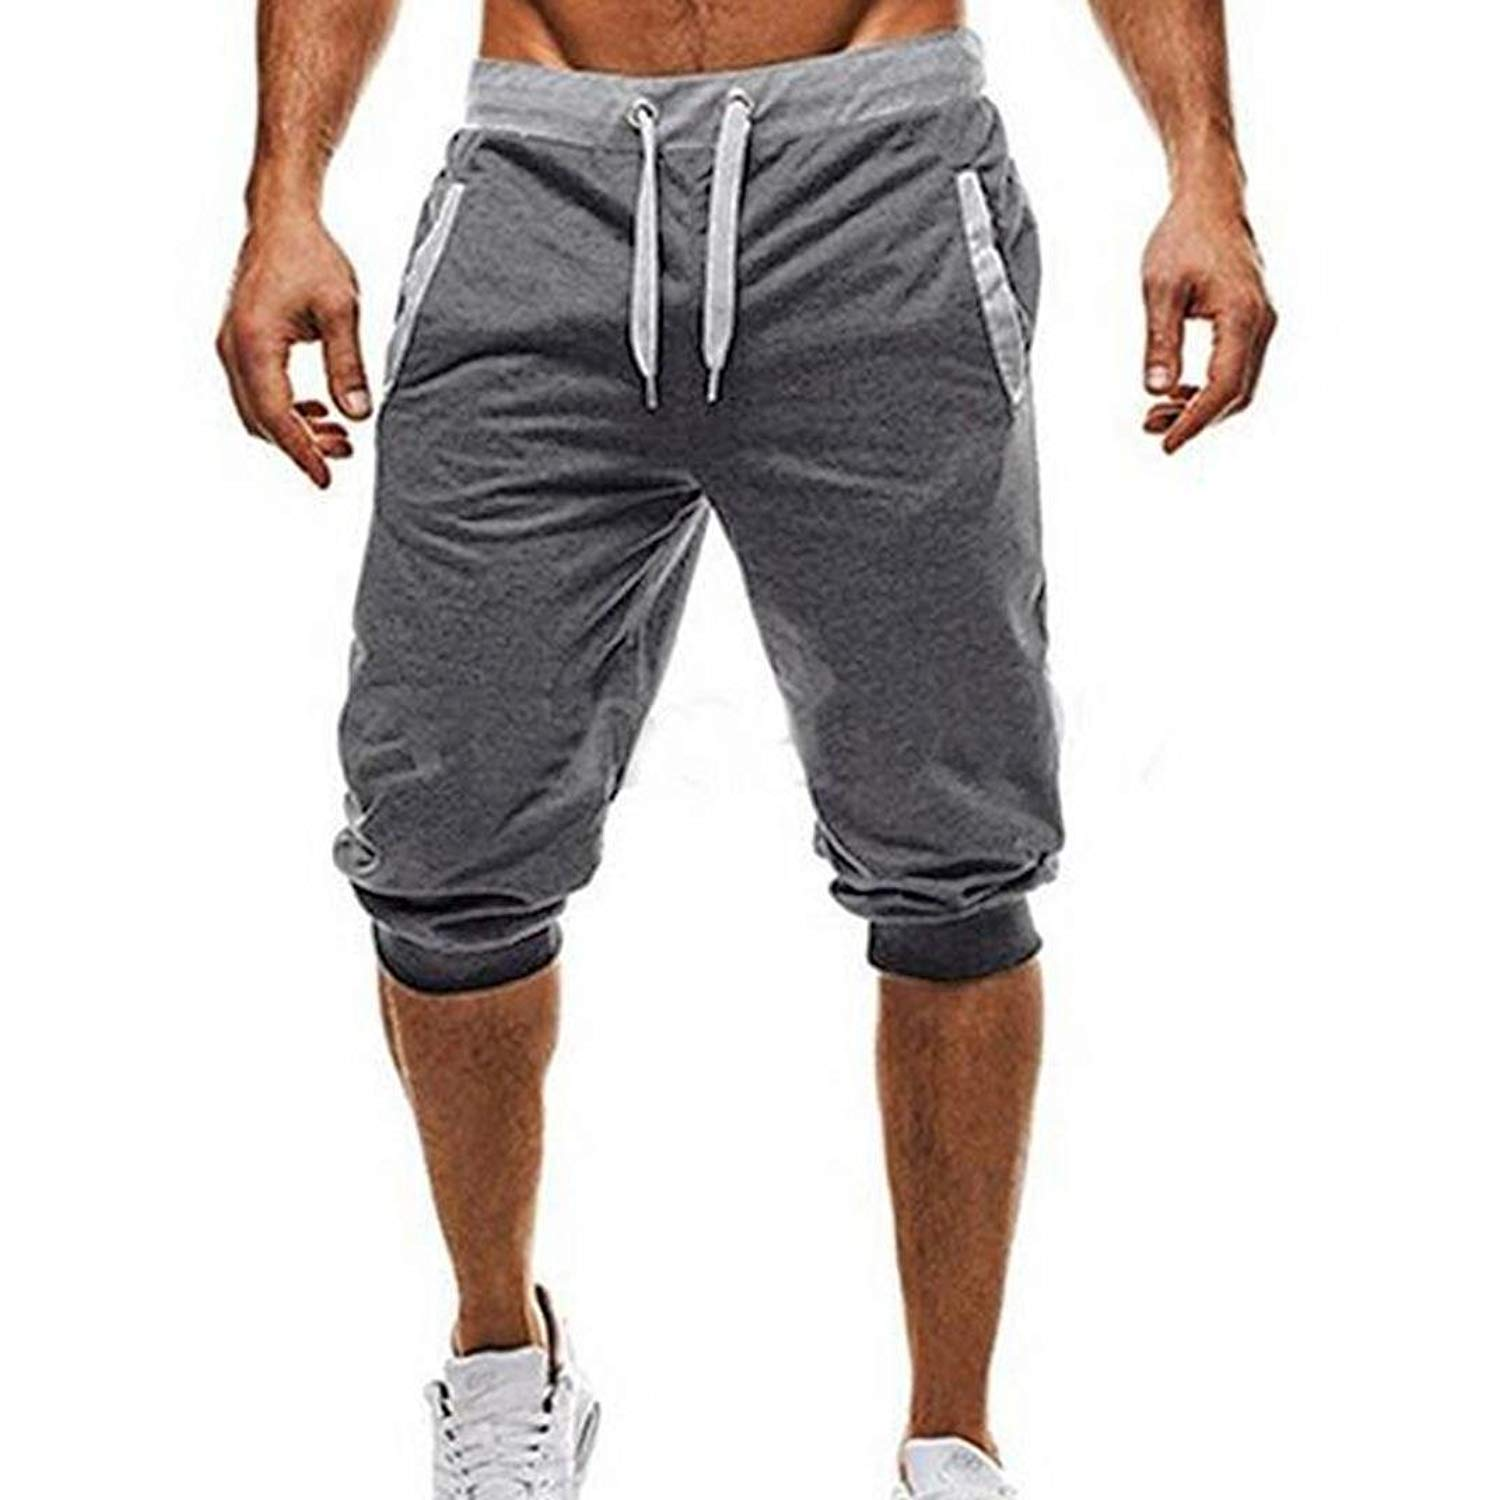 Men Pants Casual Slim Fit,Morecome Men's Fashion Simple Cropped Drawstring Pants Workout Jogging